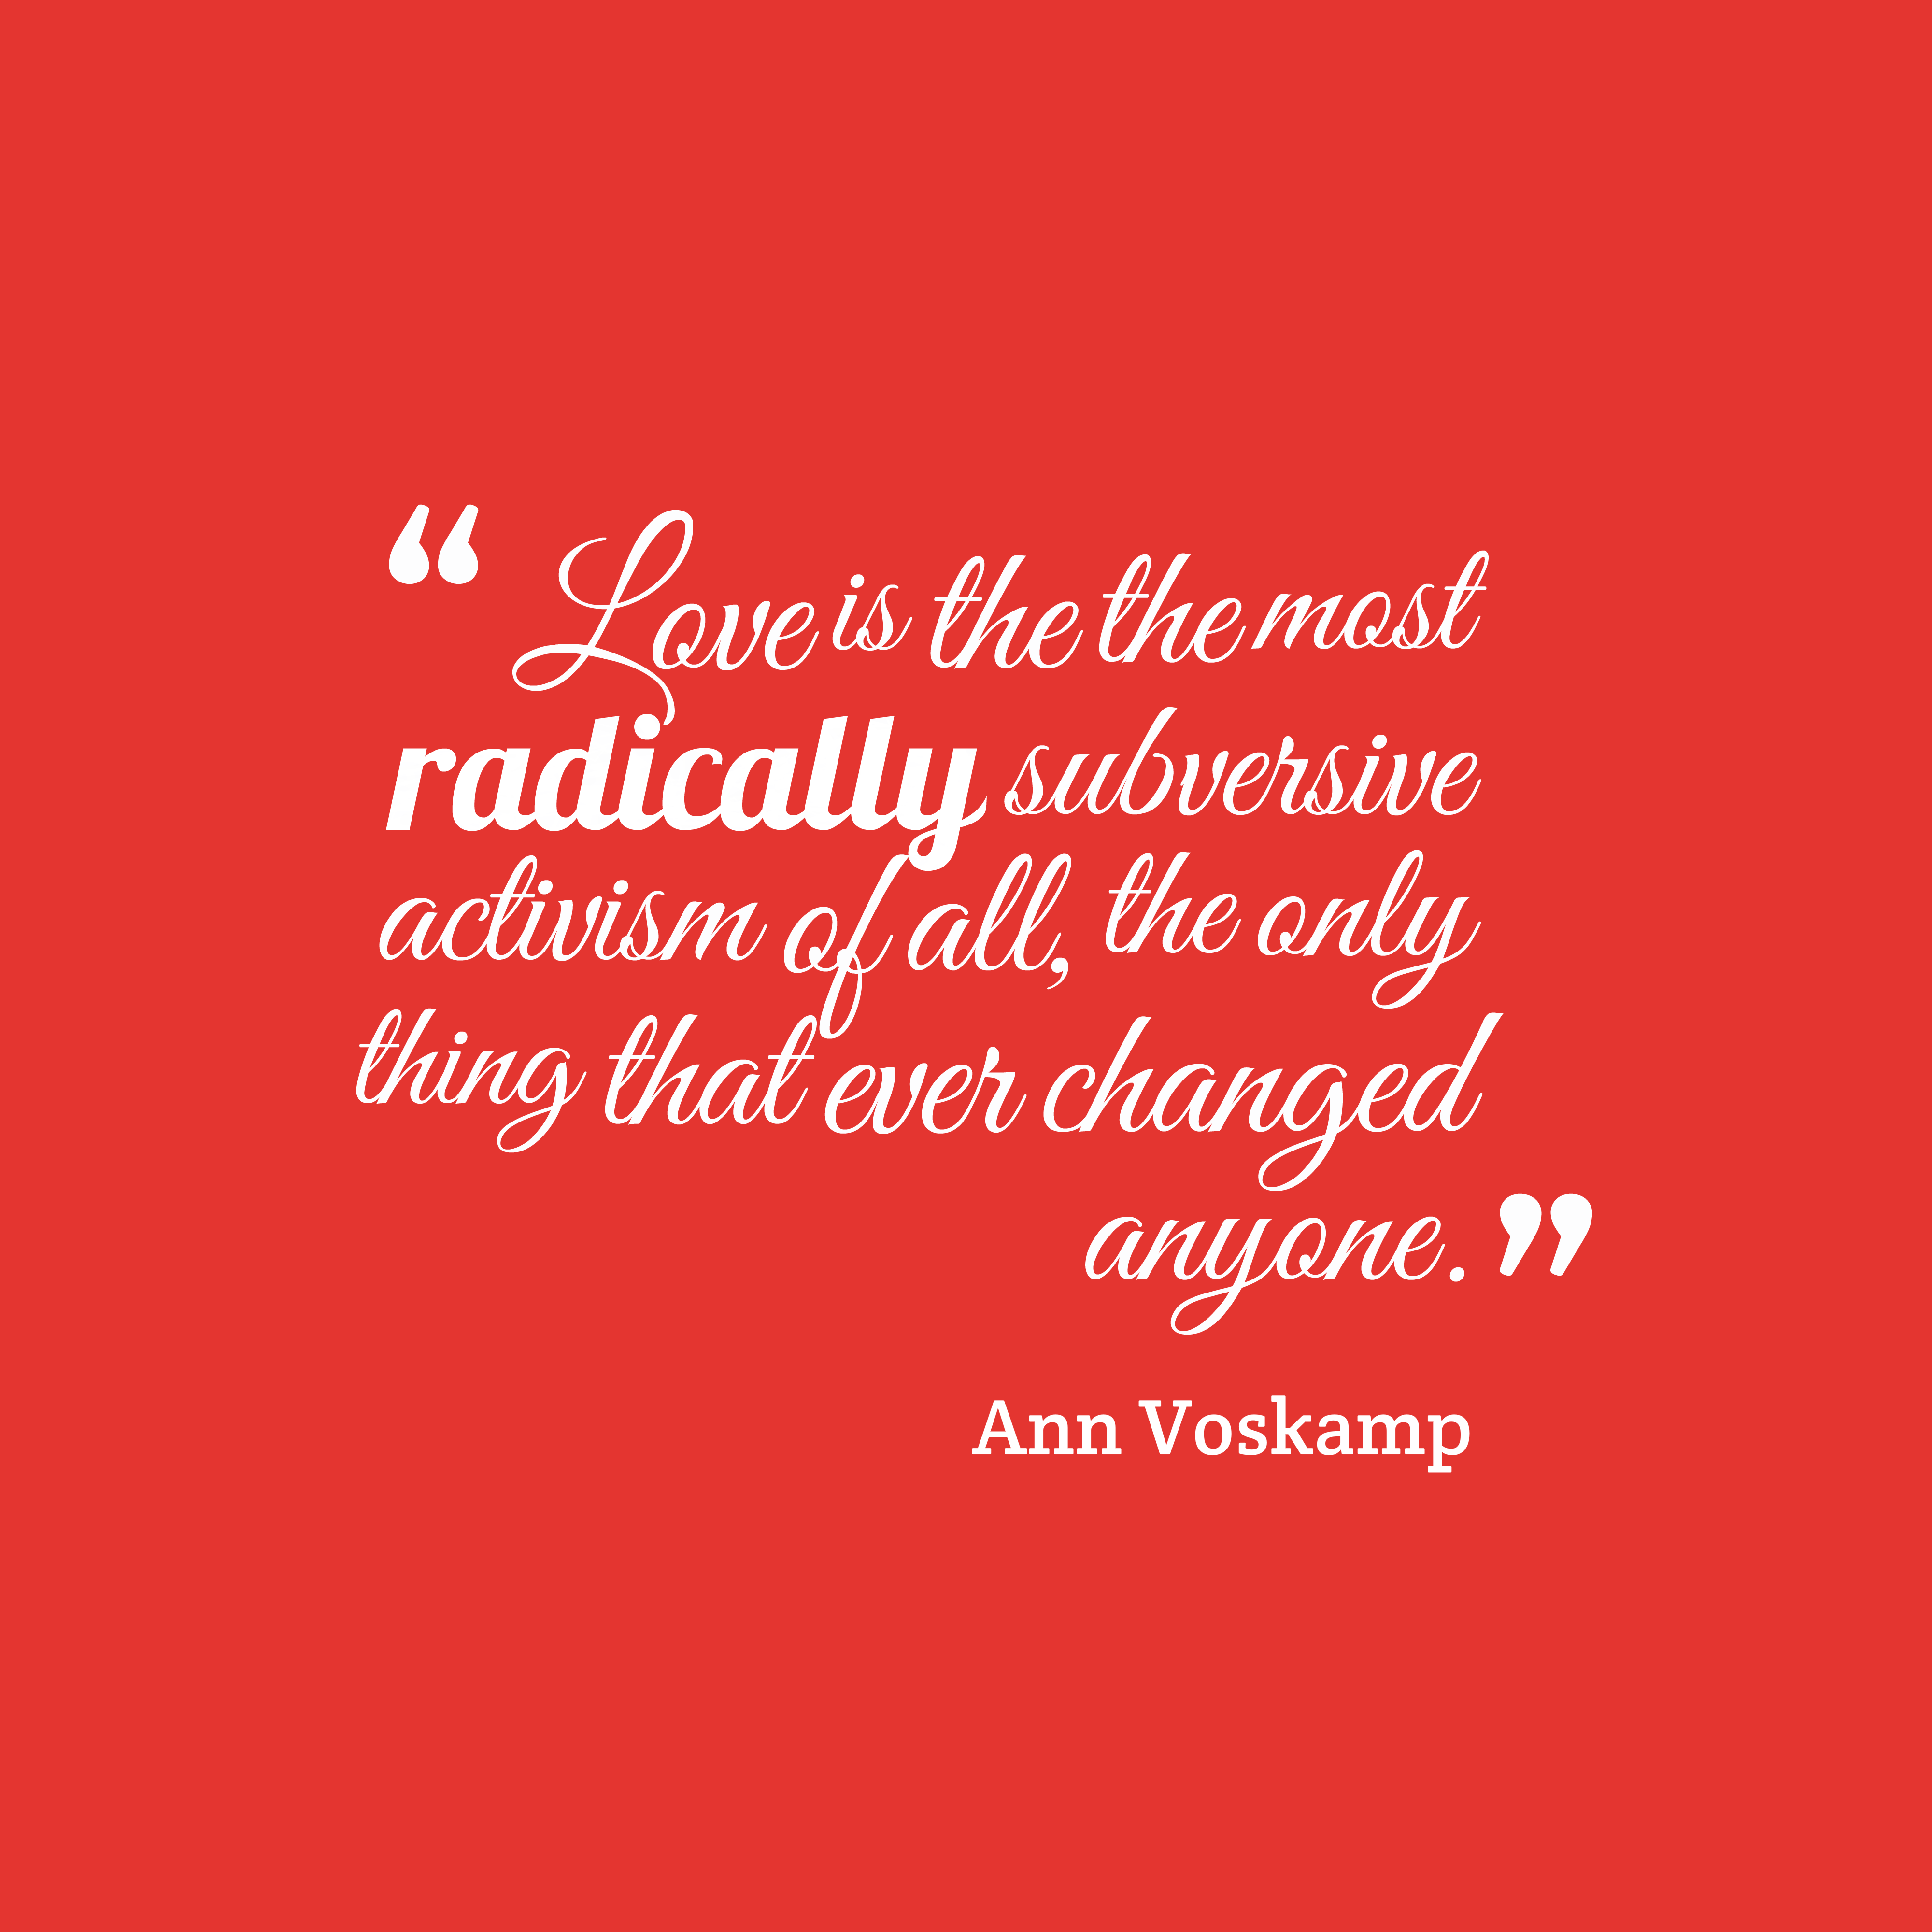 Ann Voskamp quote about love.